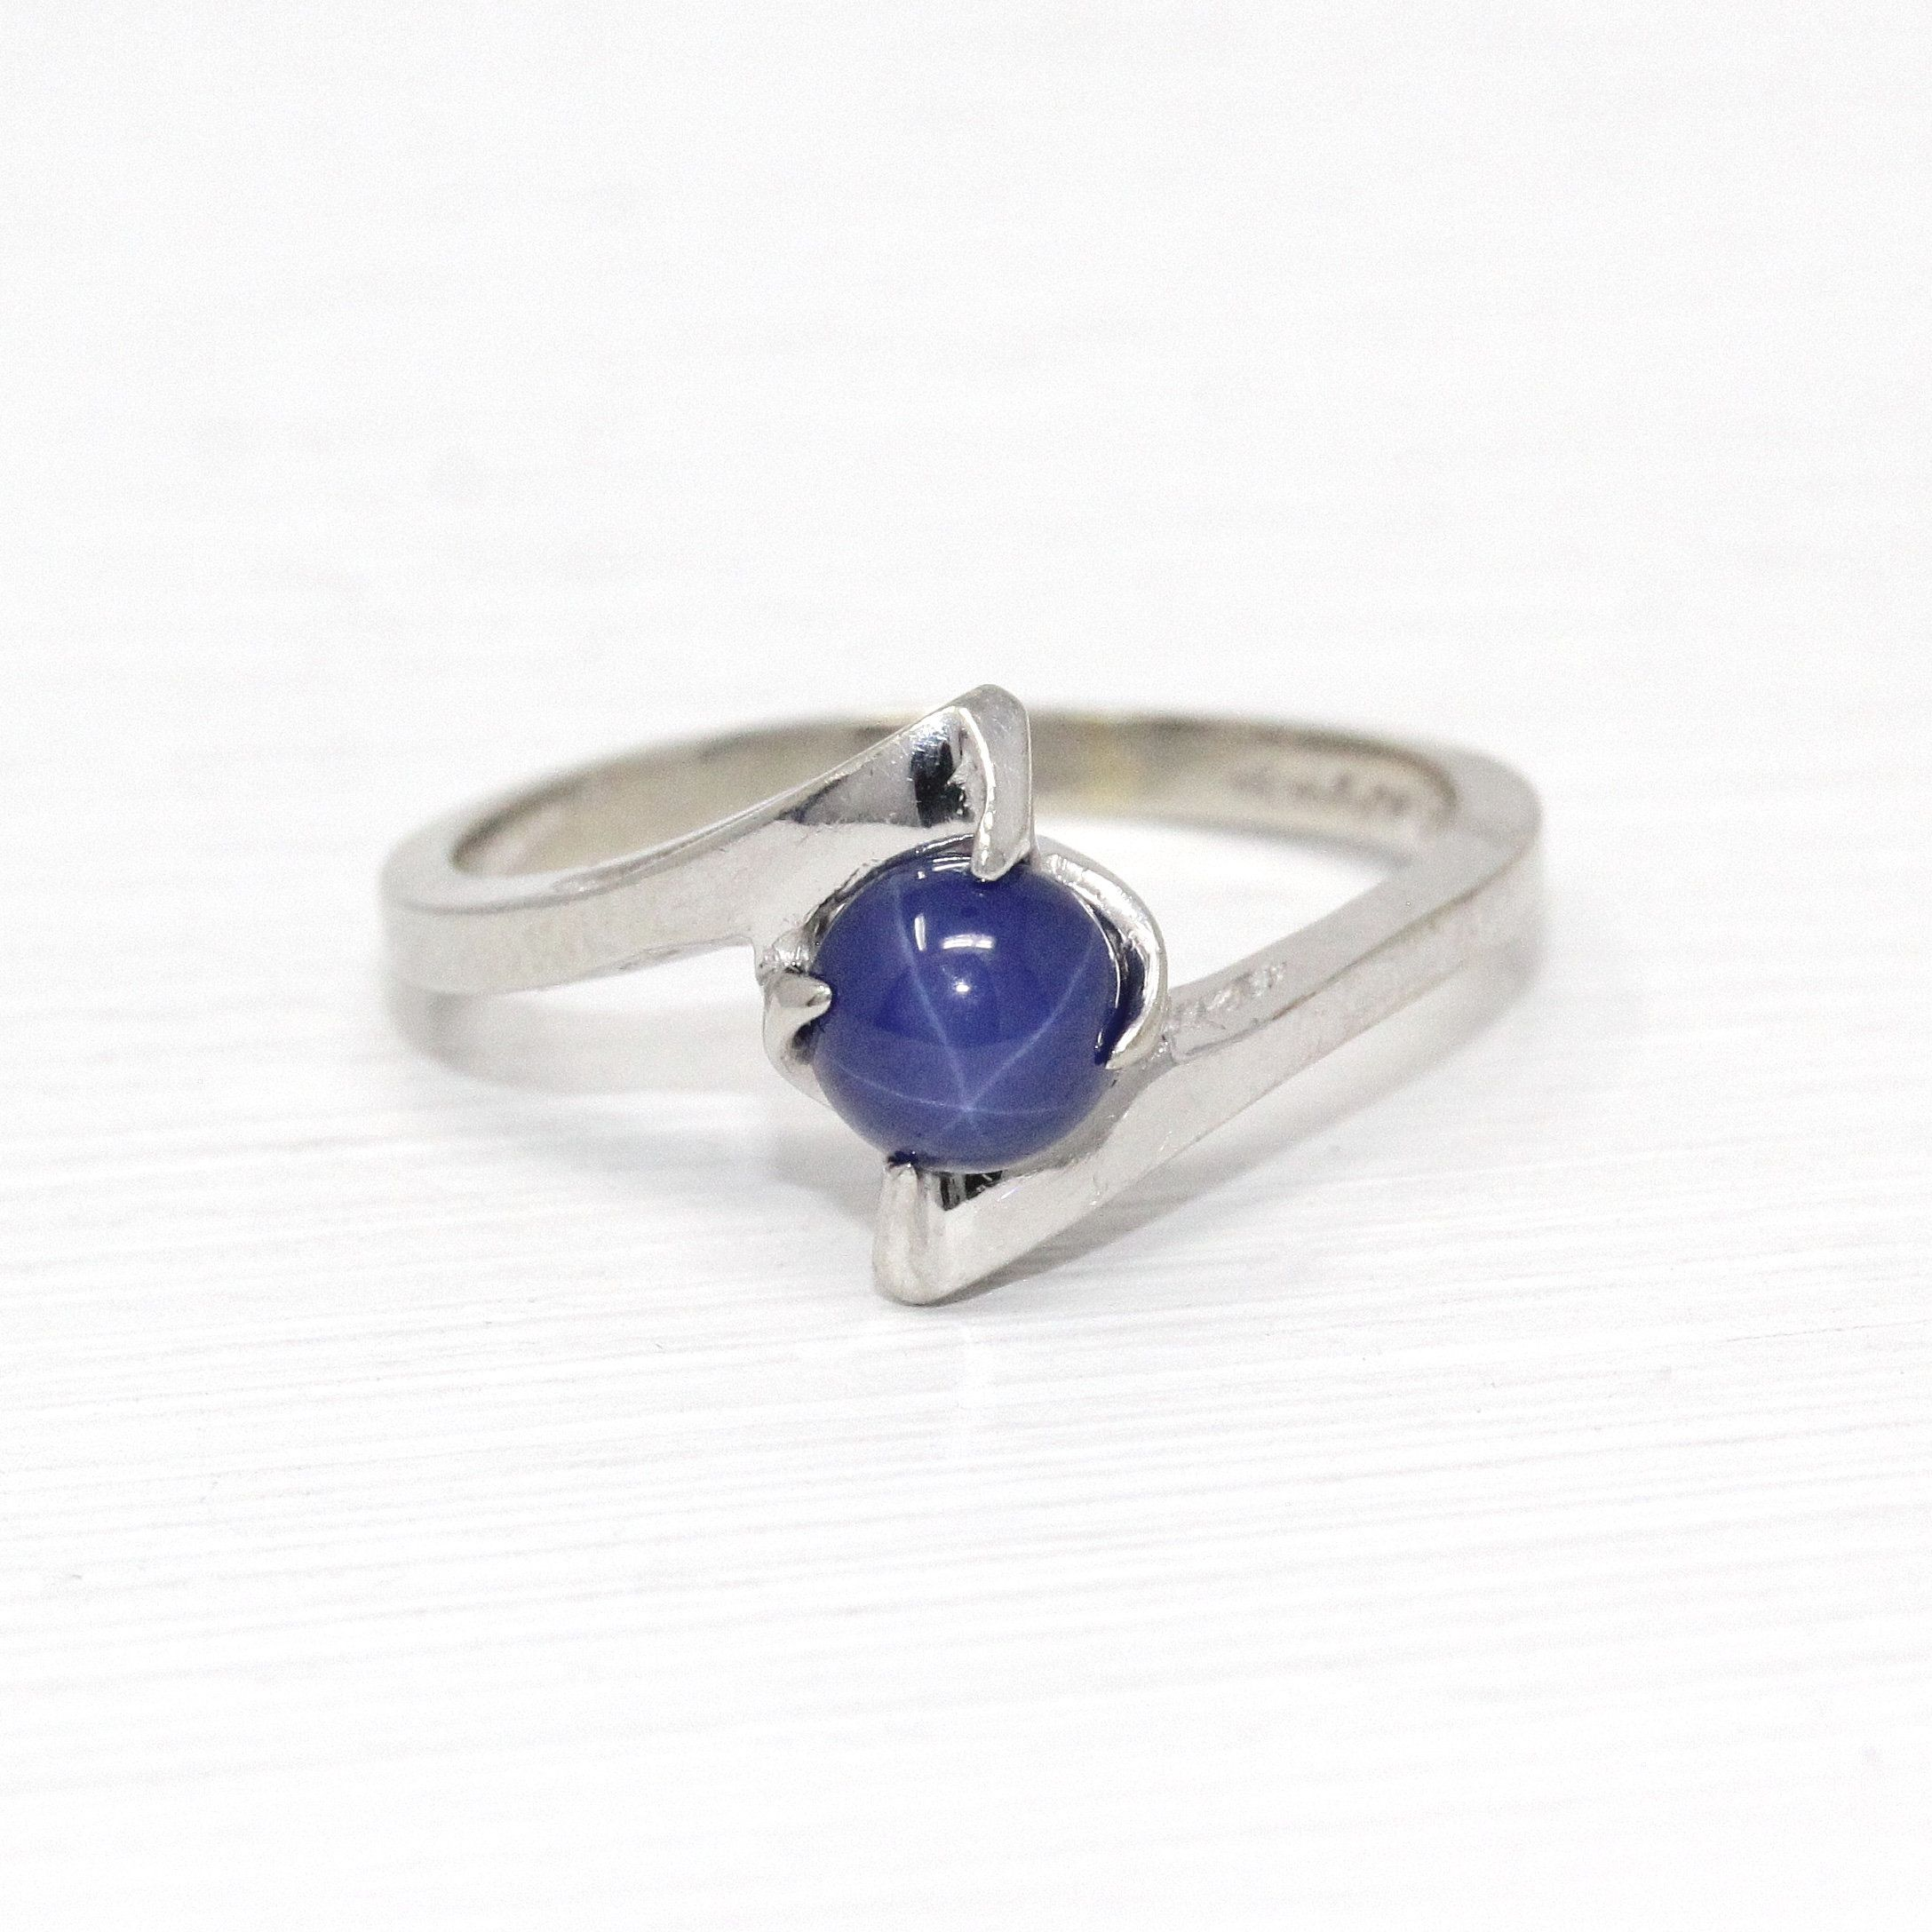 Created Star Sapphire Ring 10k White Gold Round Blue Linde Cabochon Retro Size 5 3 4 September Birthstone B Star Sapphire Ring Sapphire Ring Star Sapphire